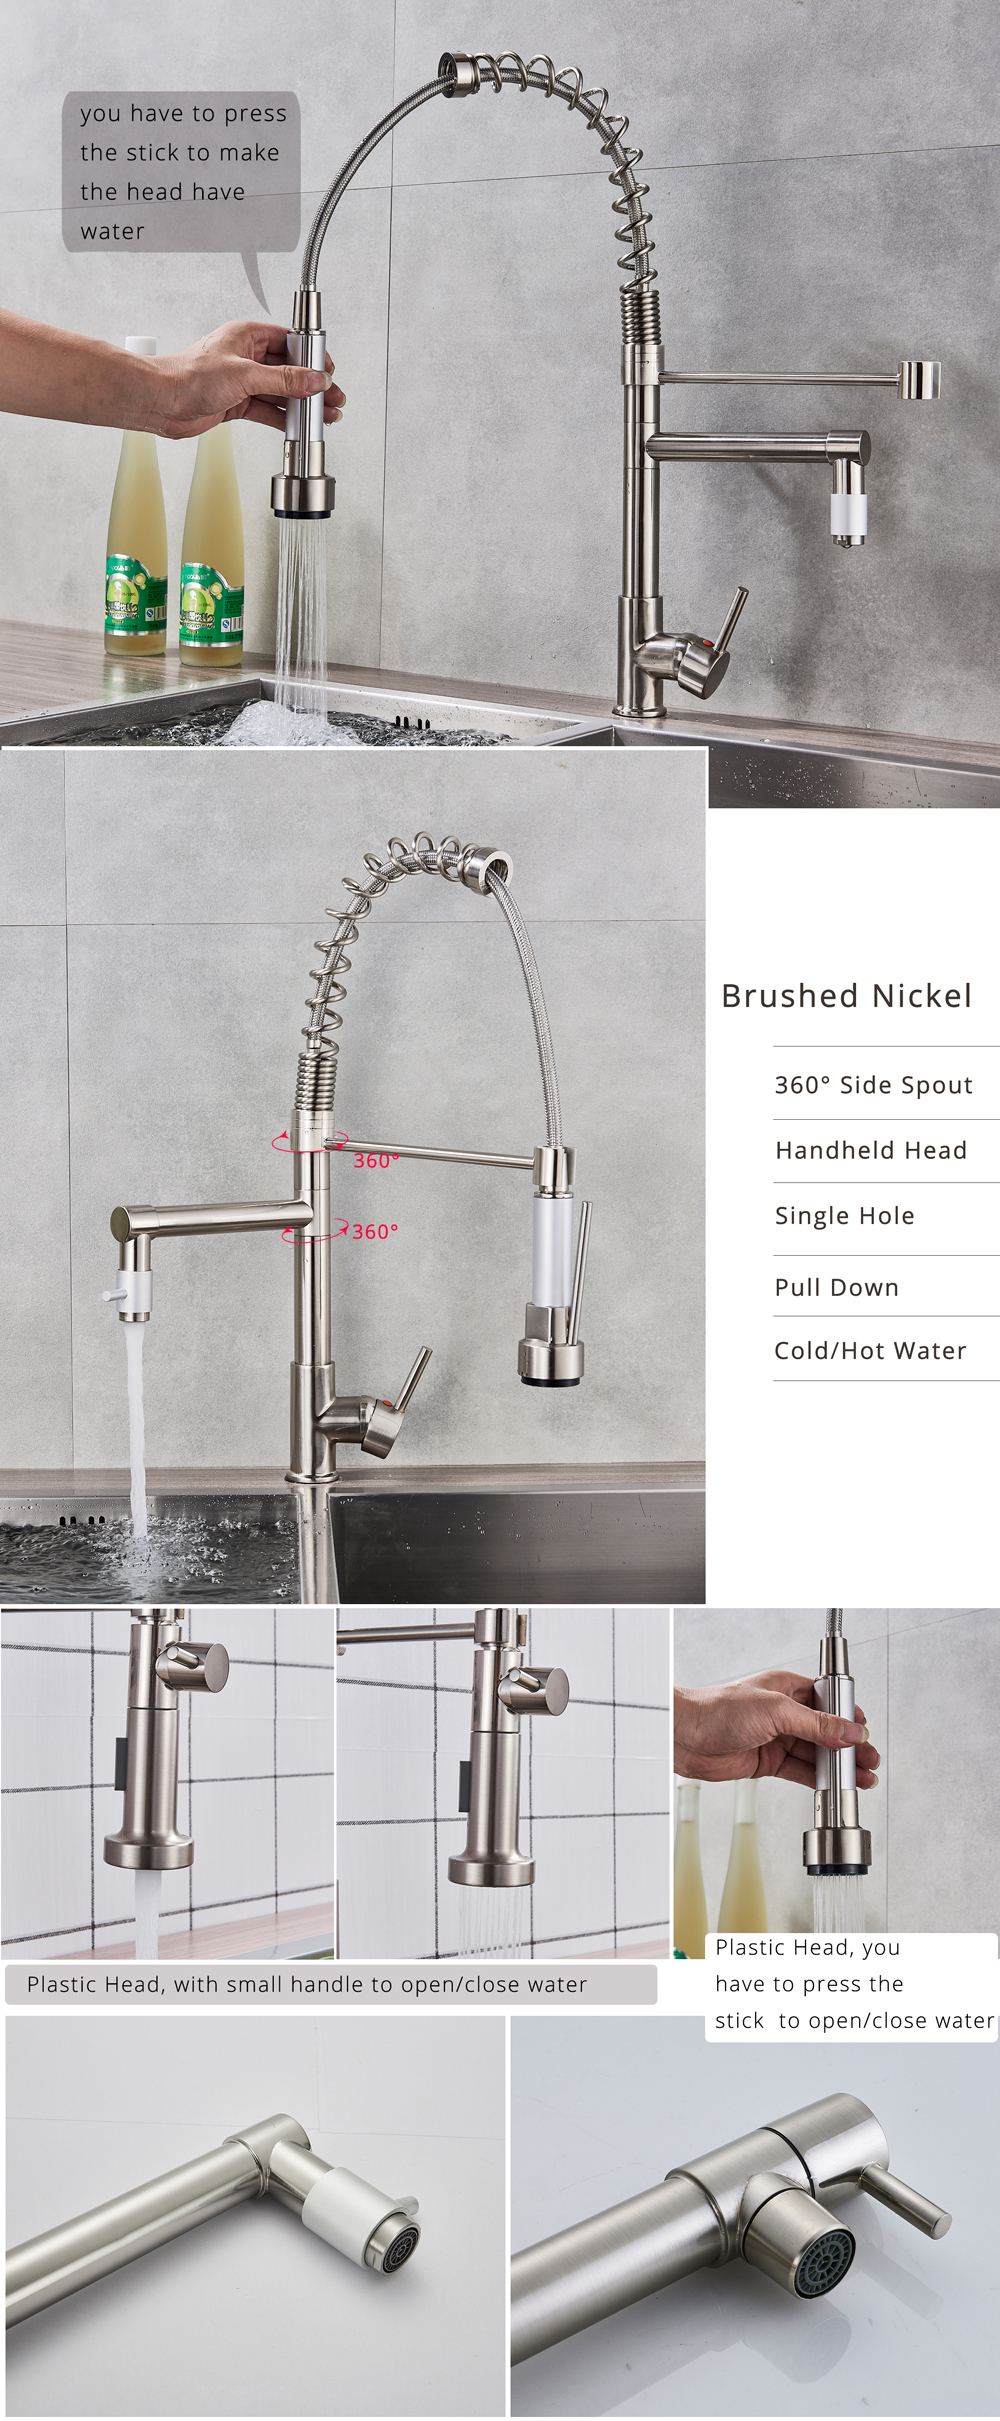 H258effa55200461baf2efbc446c9fb97N Rozin Black and Rose Golden Spring Pull Down Kitchen Sink Faucet Hot & Cold Water Mixer Crane Tap with Dual Spout Deck Mounted